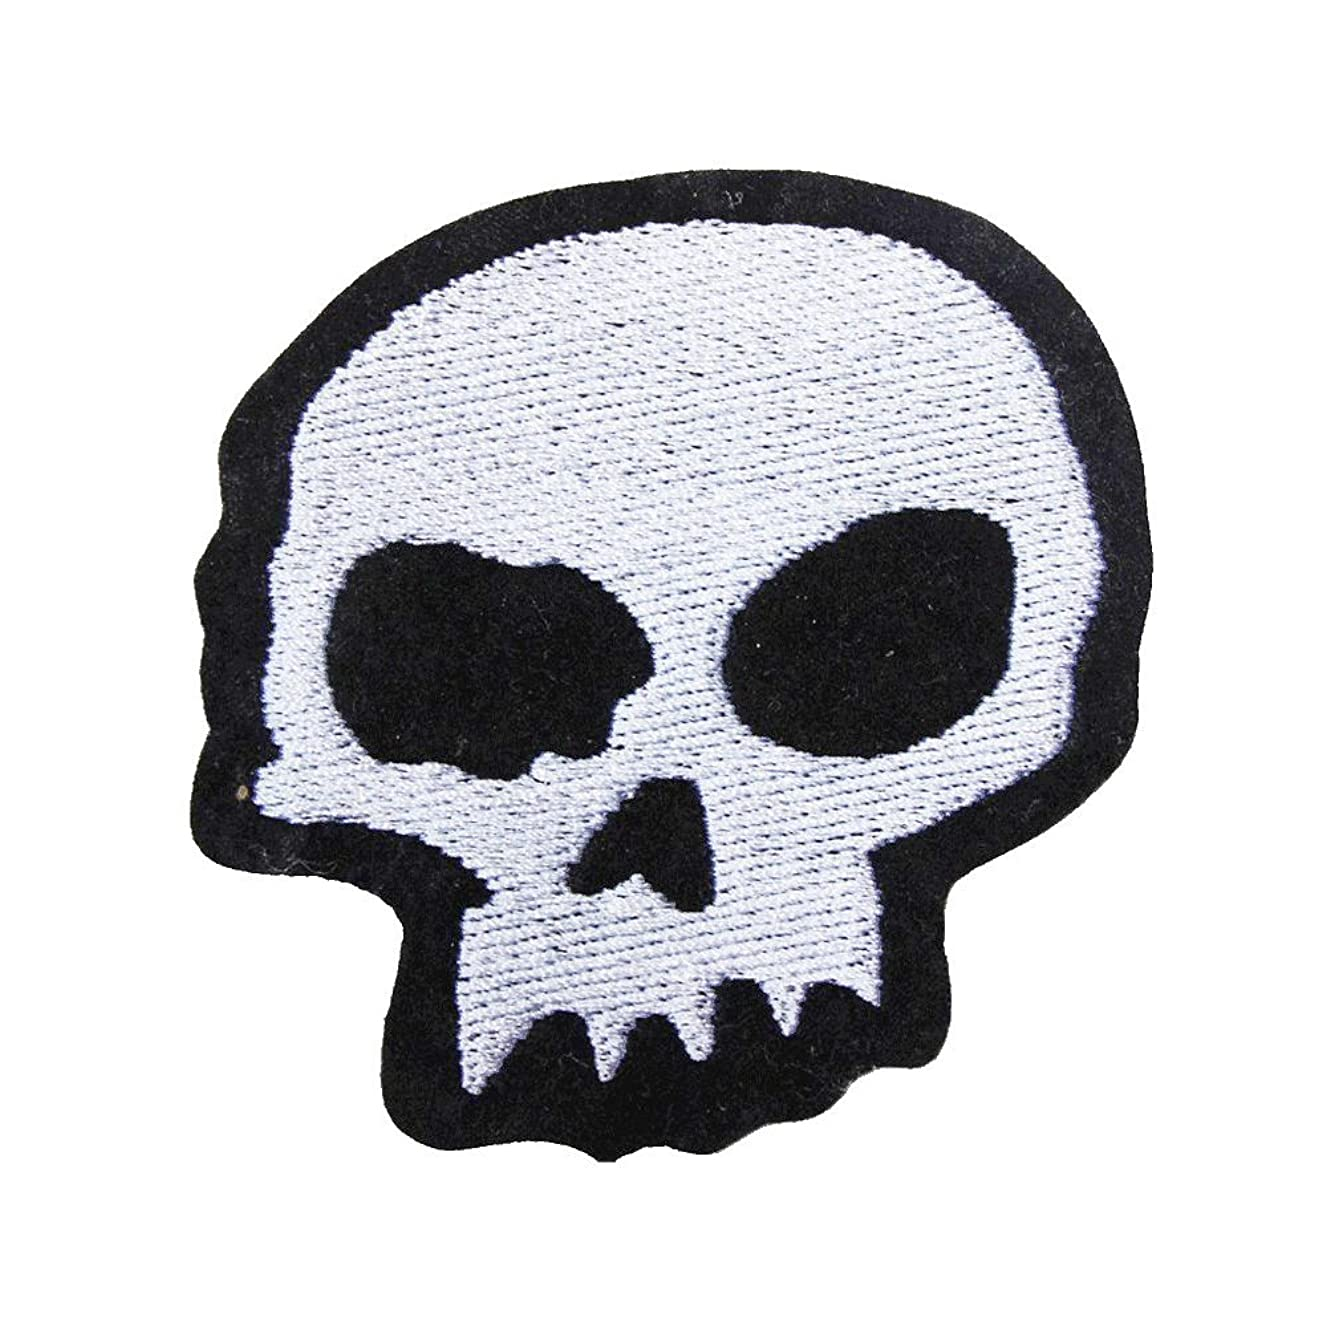 U-Sky Sew or Iron on Patches - Skull Head Motorcycle Patch for Biker Jackets, Jeans, Clothes - Pack of 1pc - Size: 2.9x2.9inch